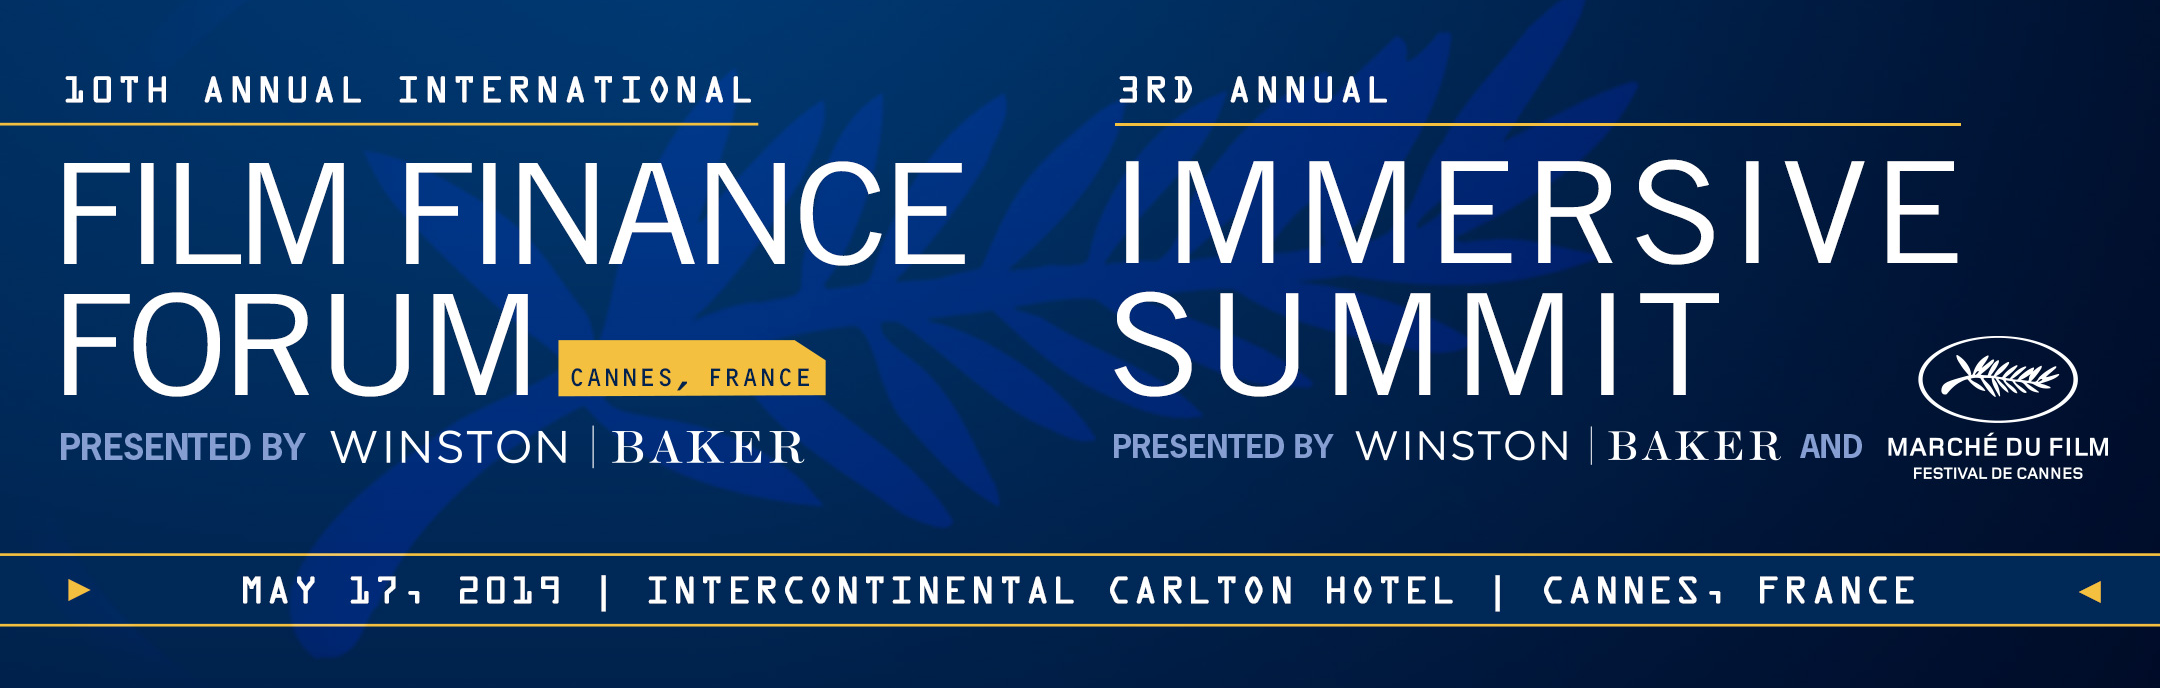 10th Annual International Film Finance Forum & 3rd Annual Immersive Summit